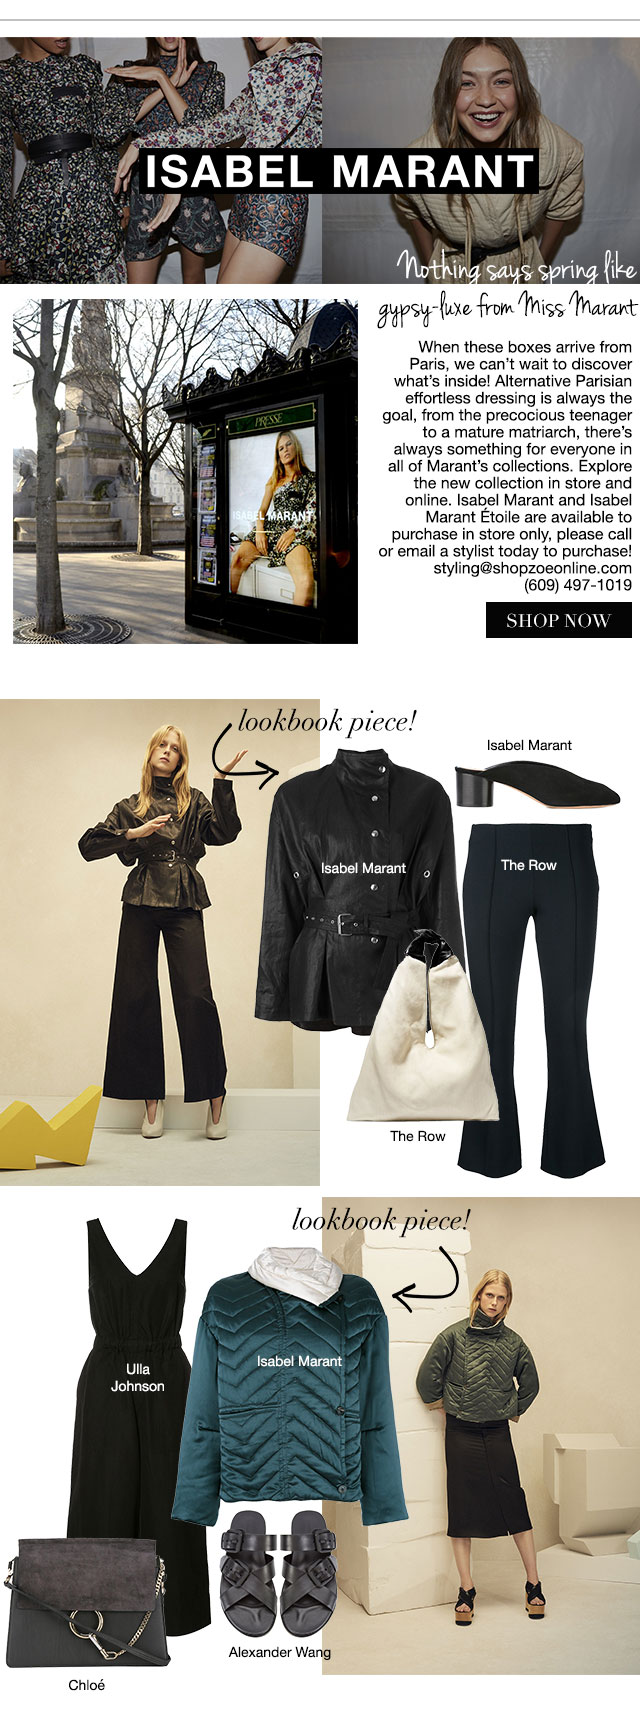 isabel_items